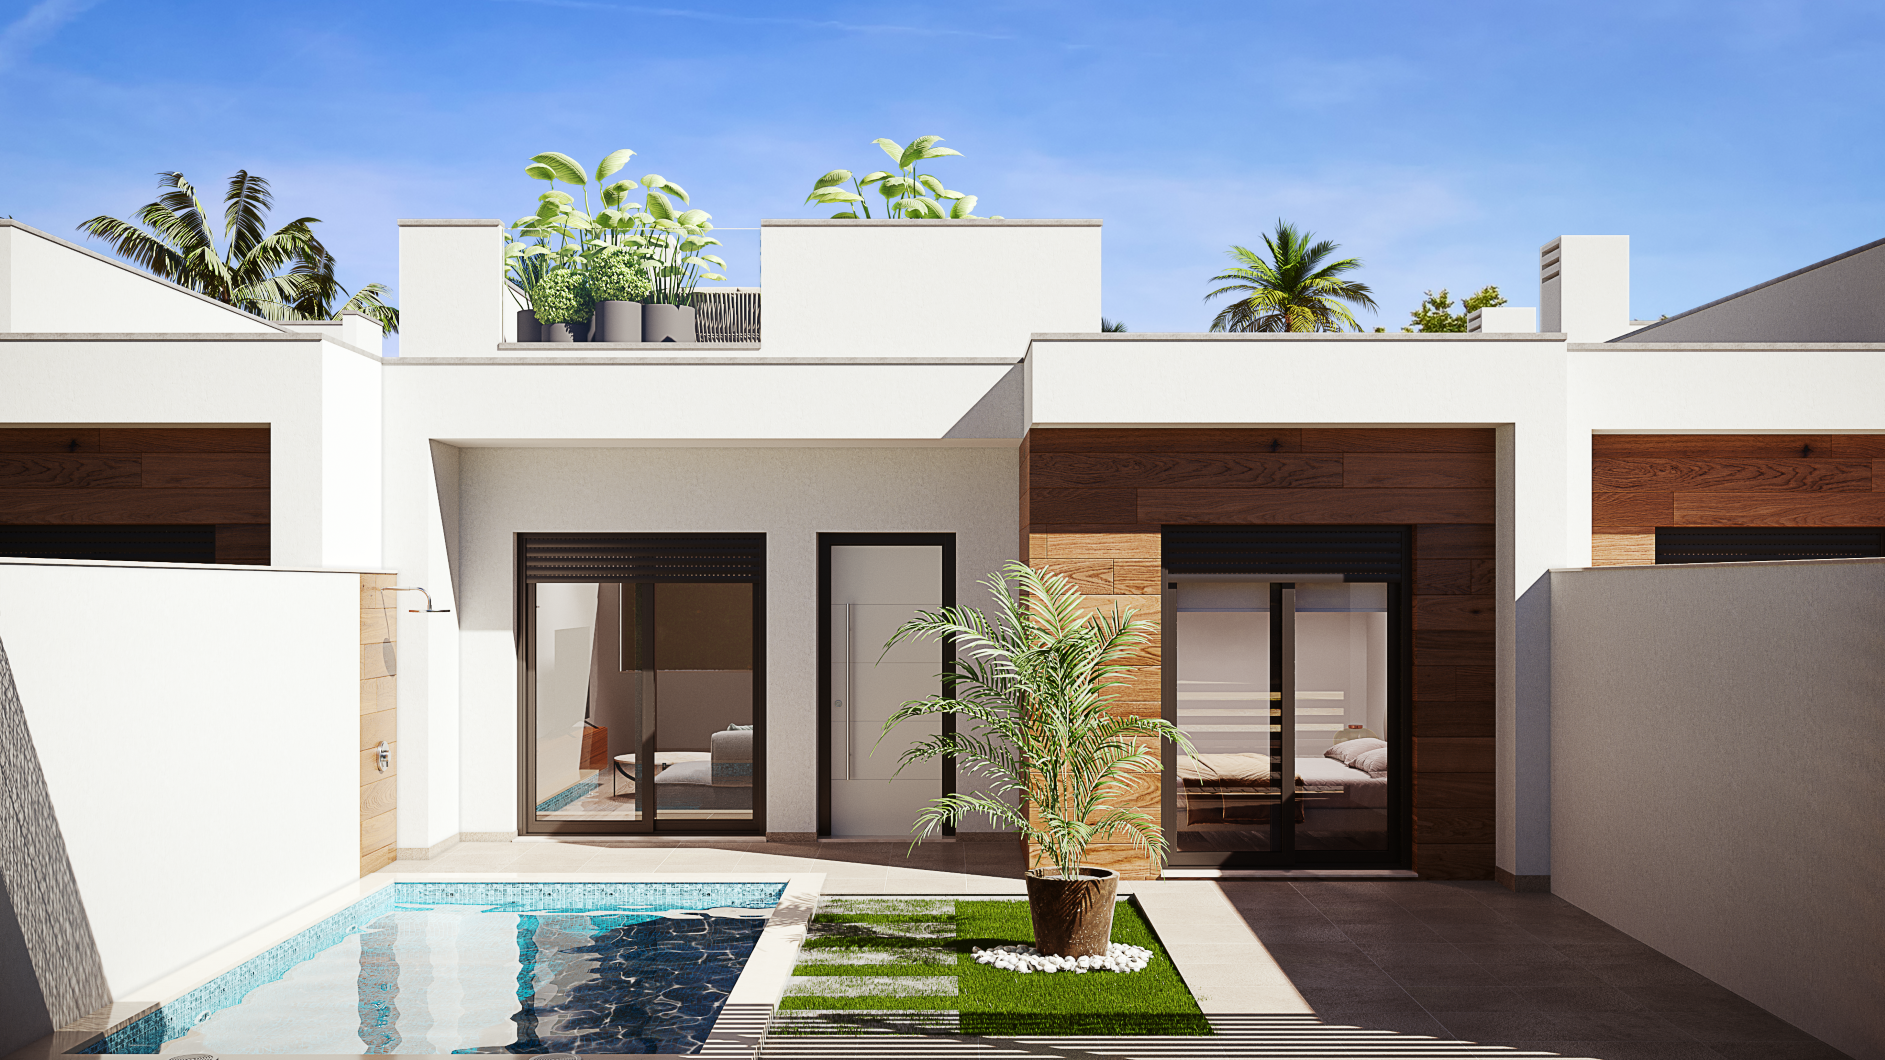 Terraced villas with a private pool on one level